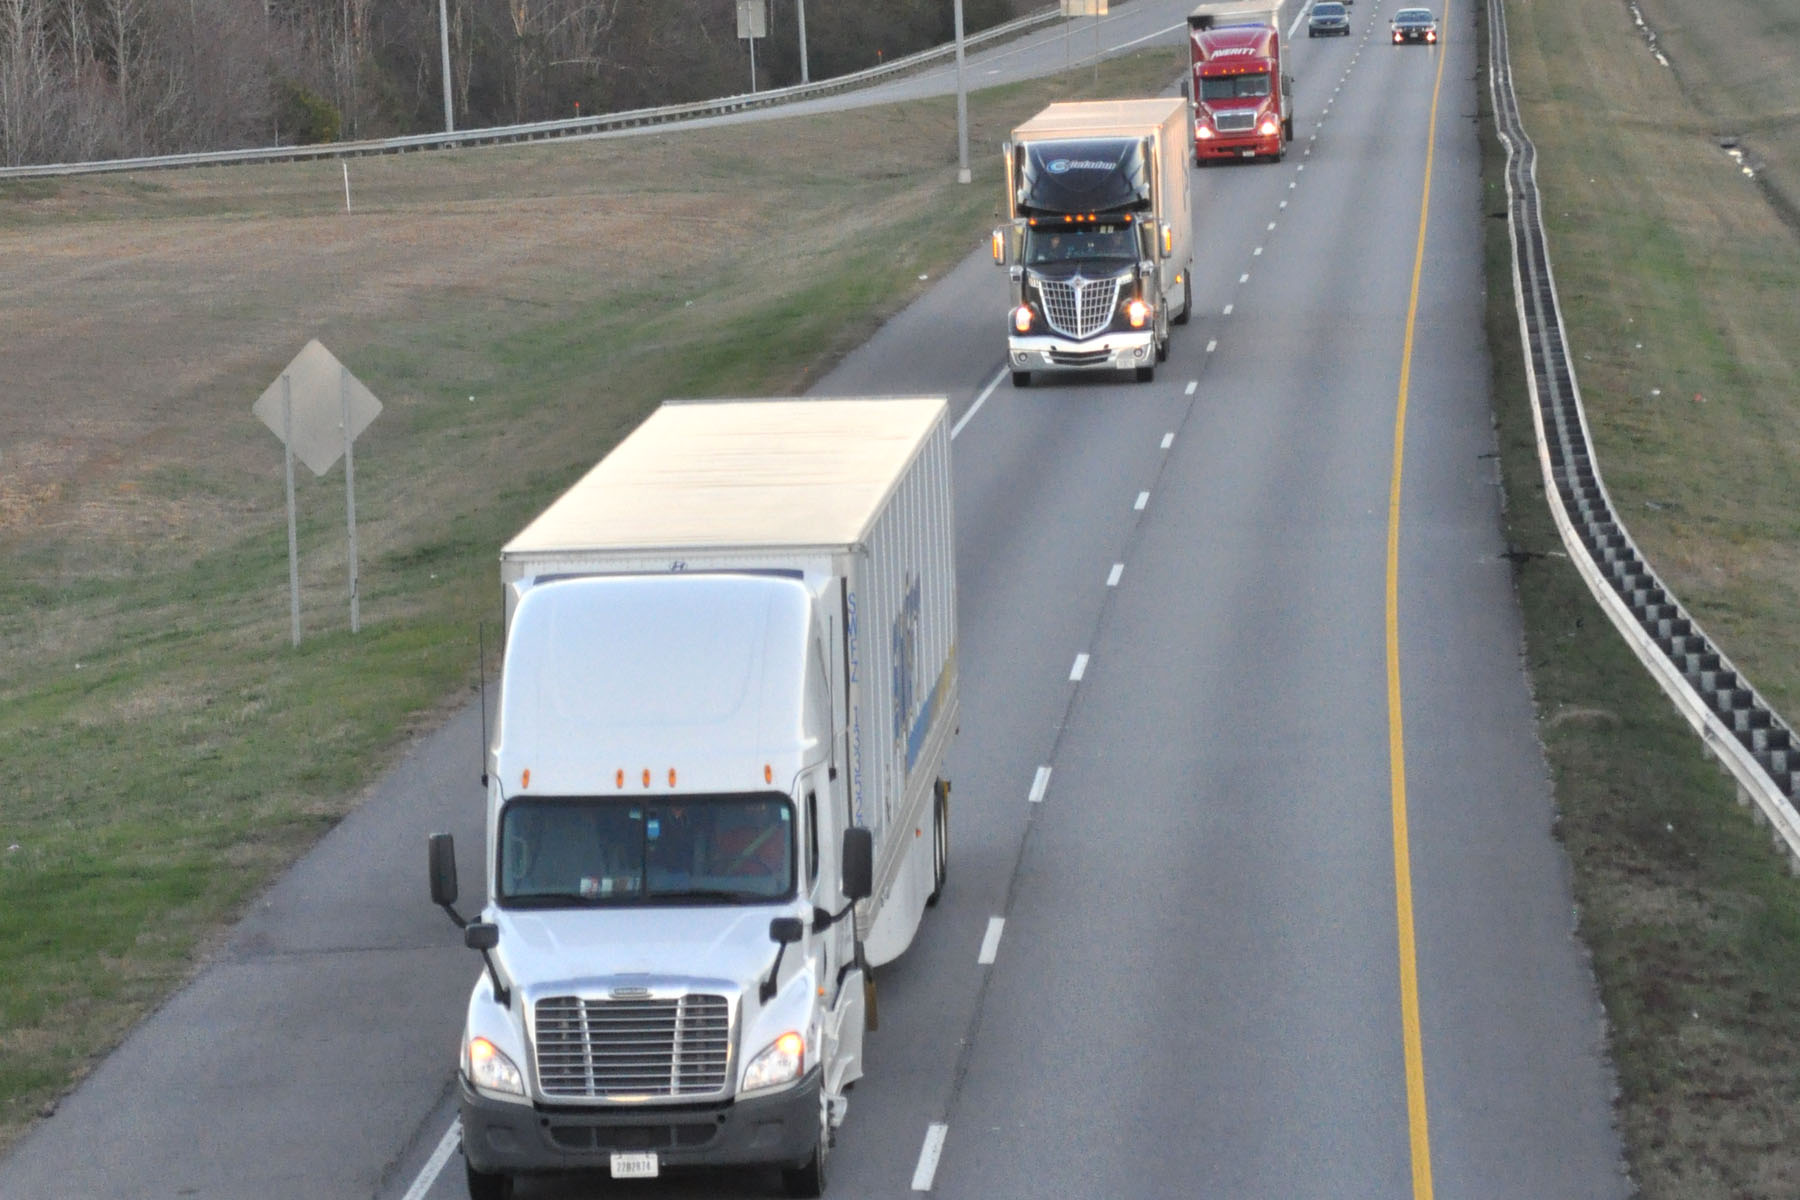 Senate introduces bill to reform FMCSA, review existing trucking regulations